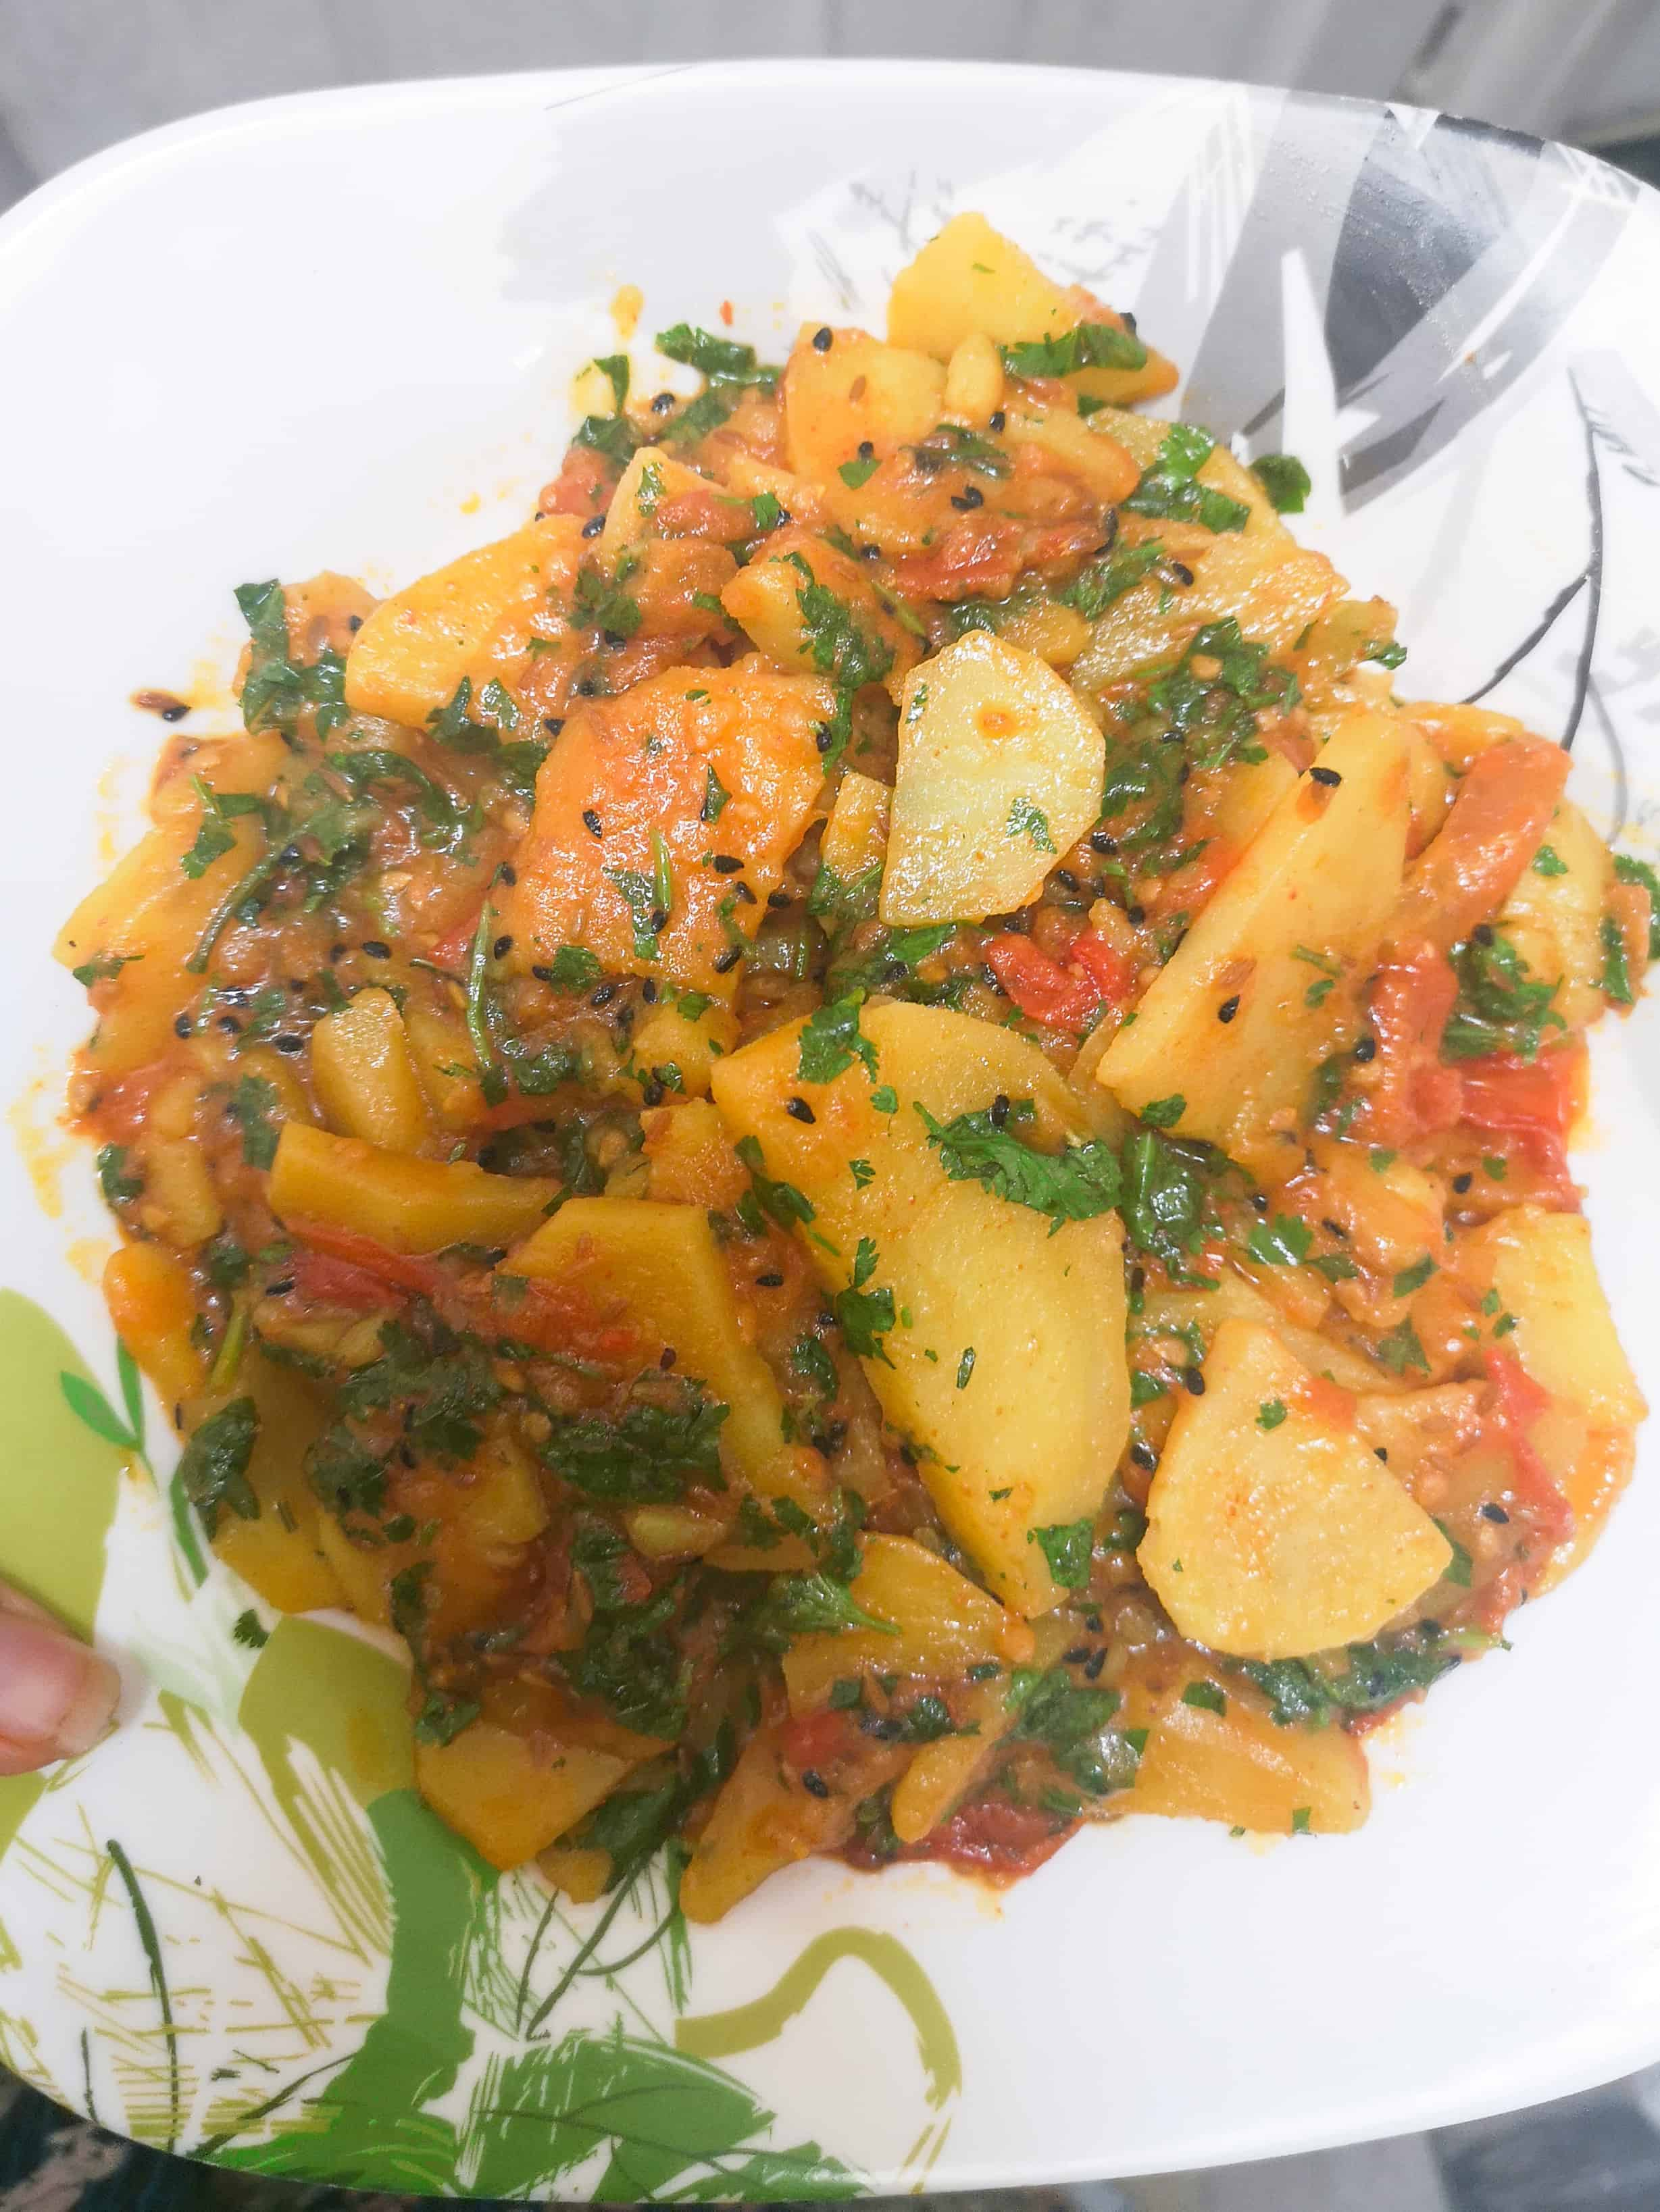 Tamatar Aloo Ki Bhujia / Sabzi - A Simple, Tangy Tomato and Potato Curry